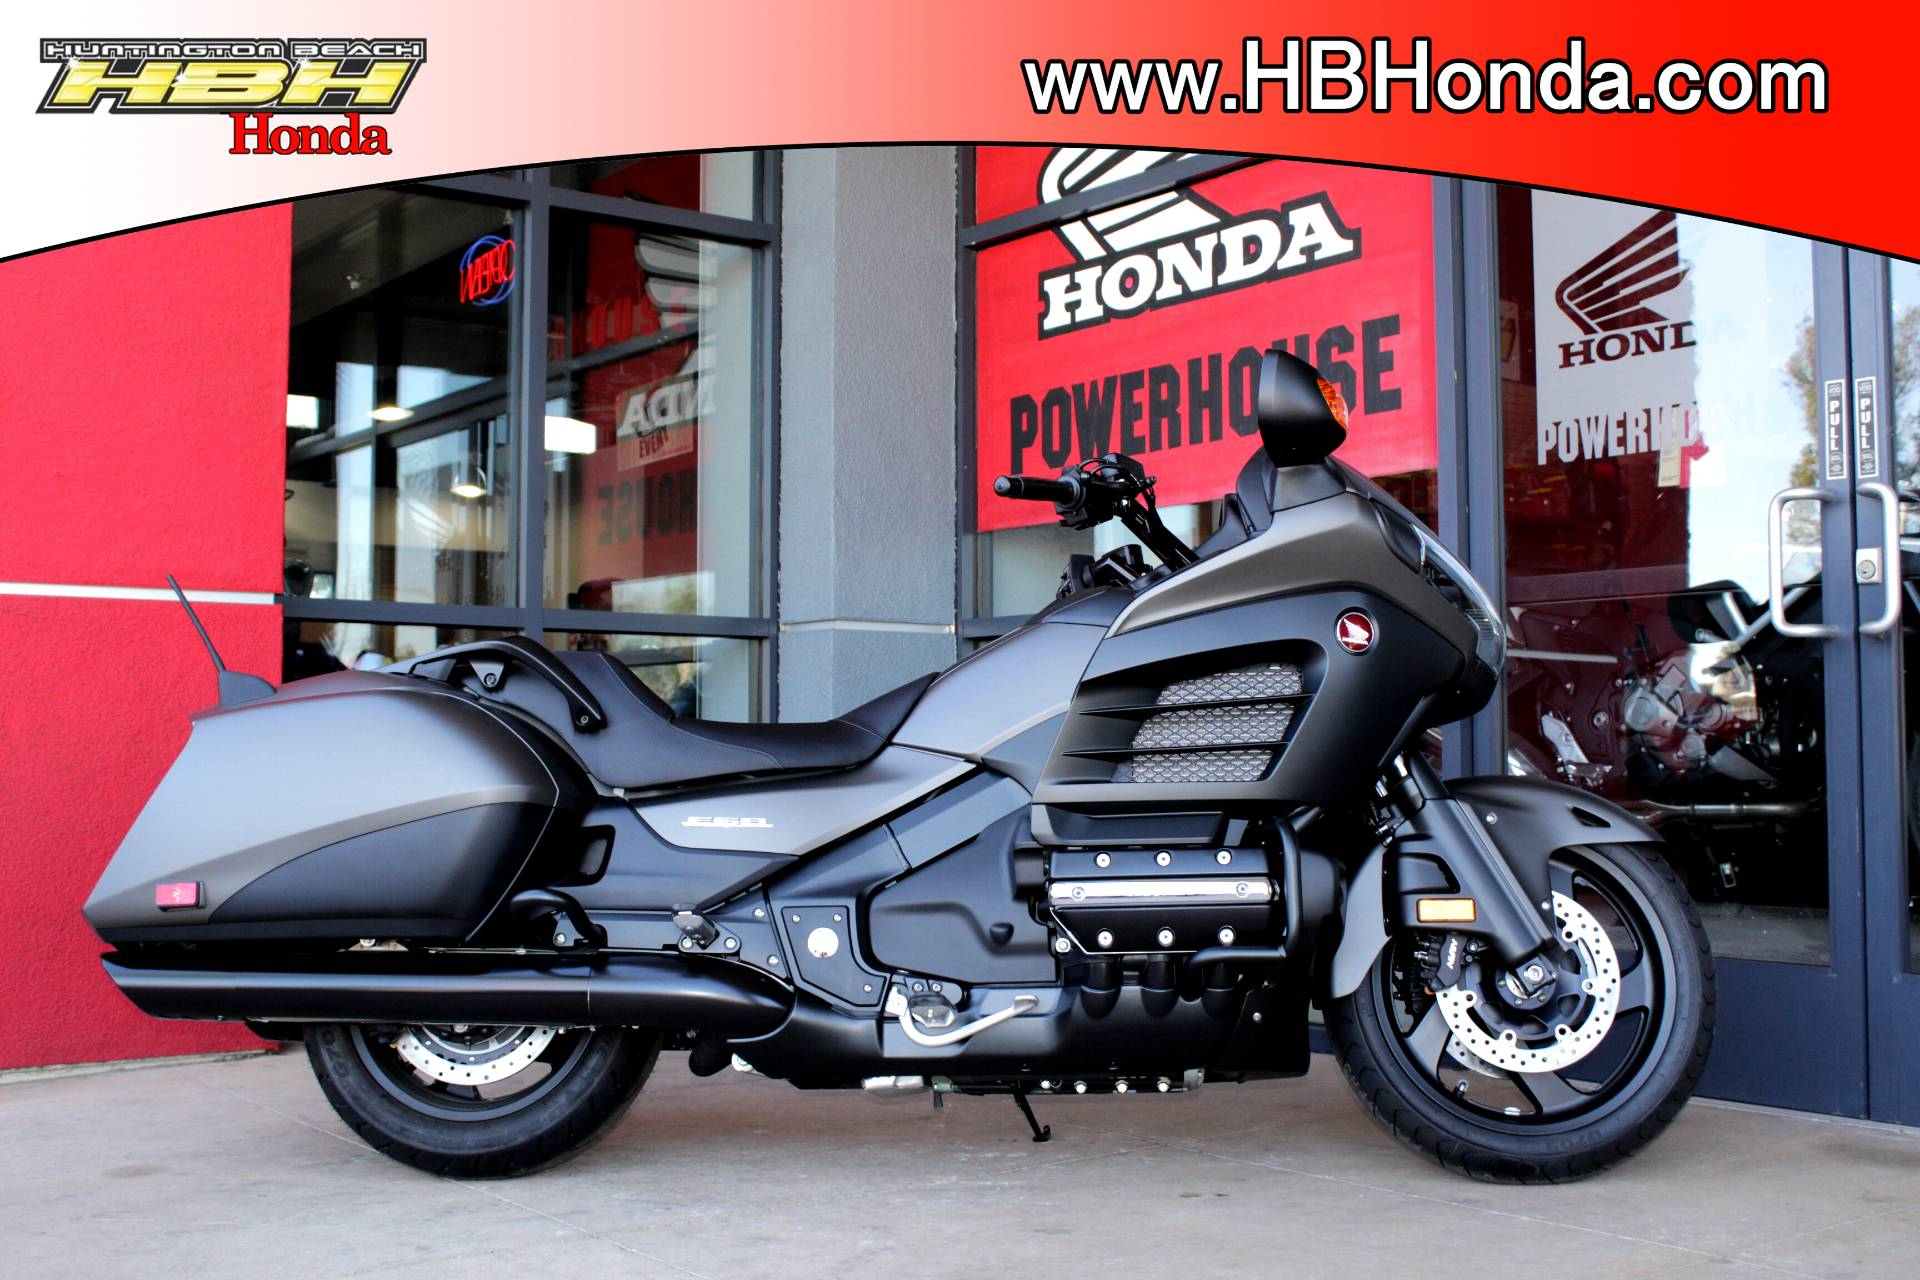 New 2016 Honda Gold Wing F6B Motorcycles for sale in